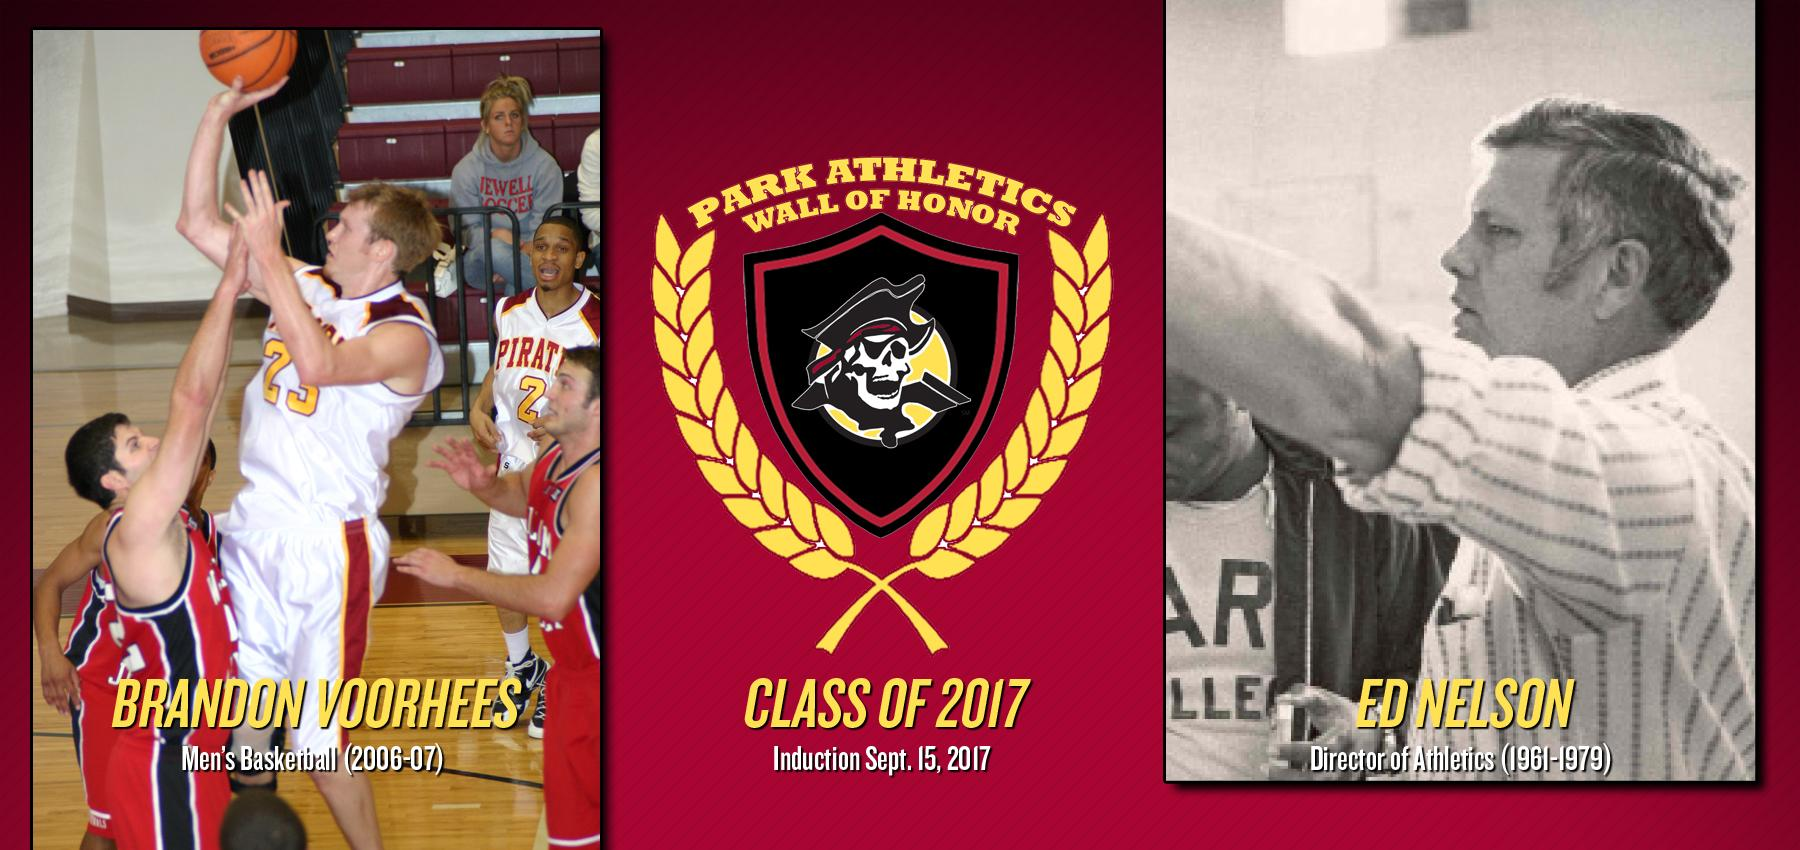 Brandon Voorhees and Ed Nelson will be inducted in to the Park Athletics Wall of Honor Sept. 15.